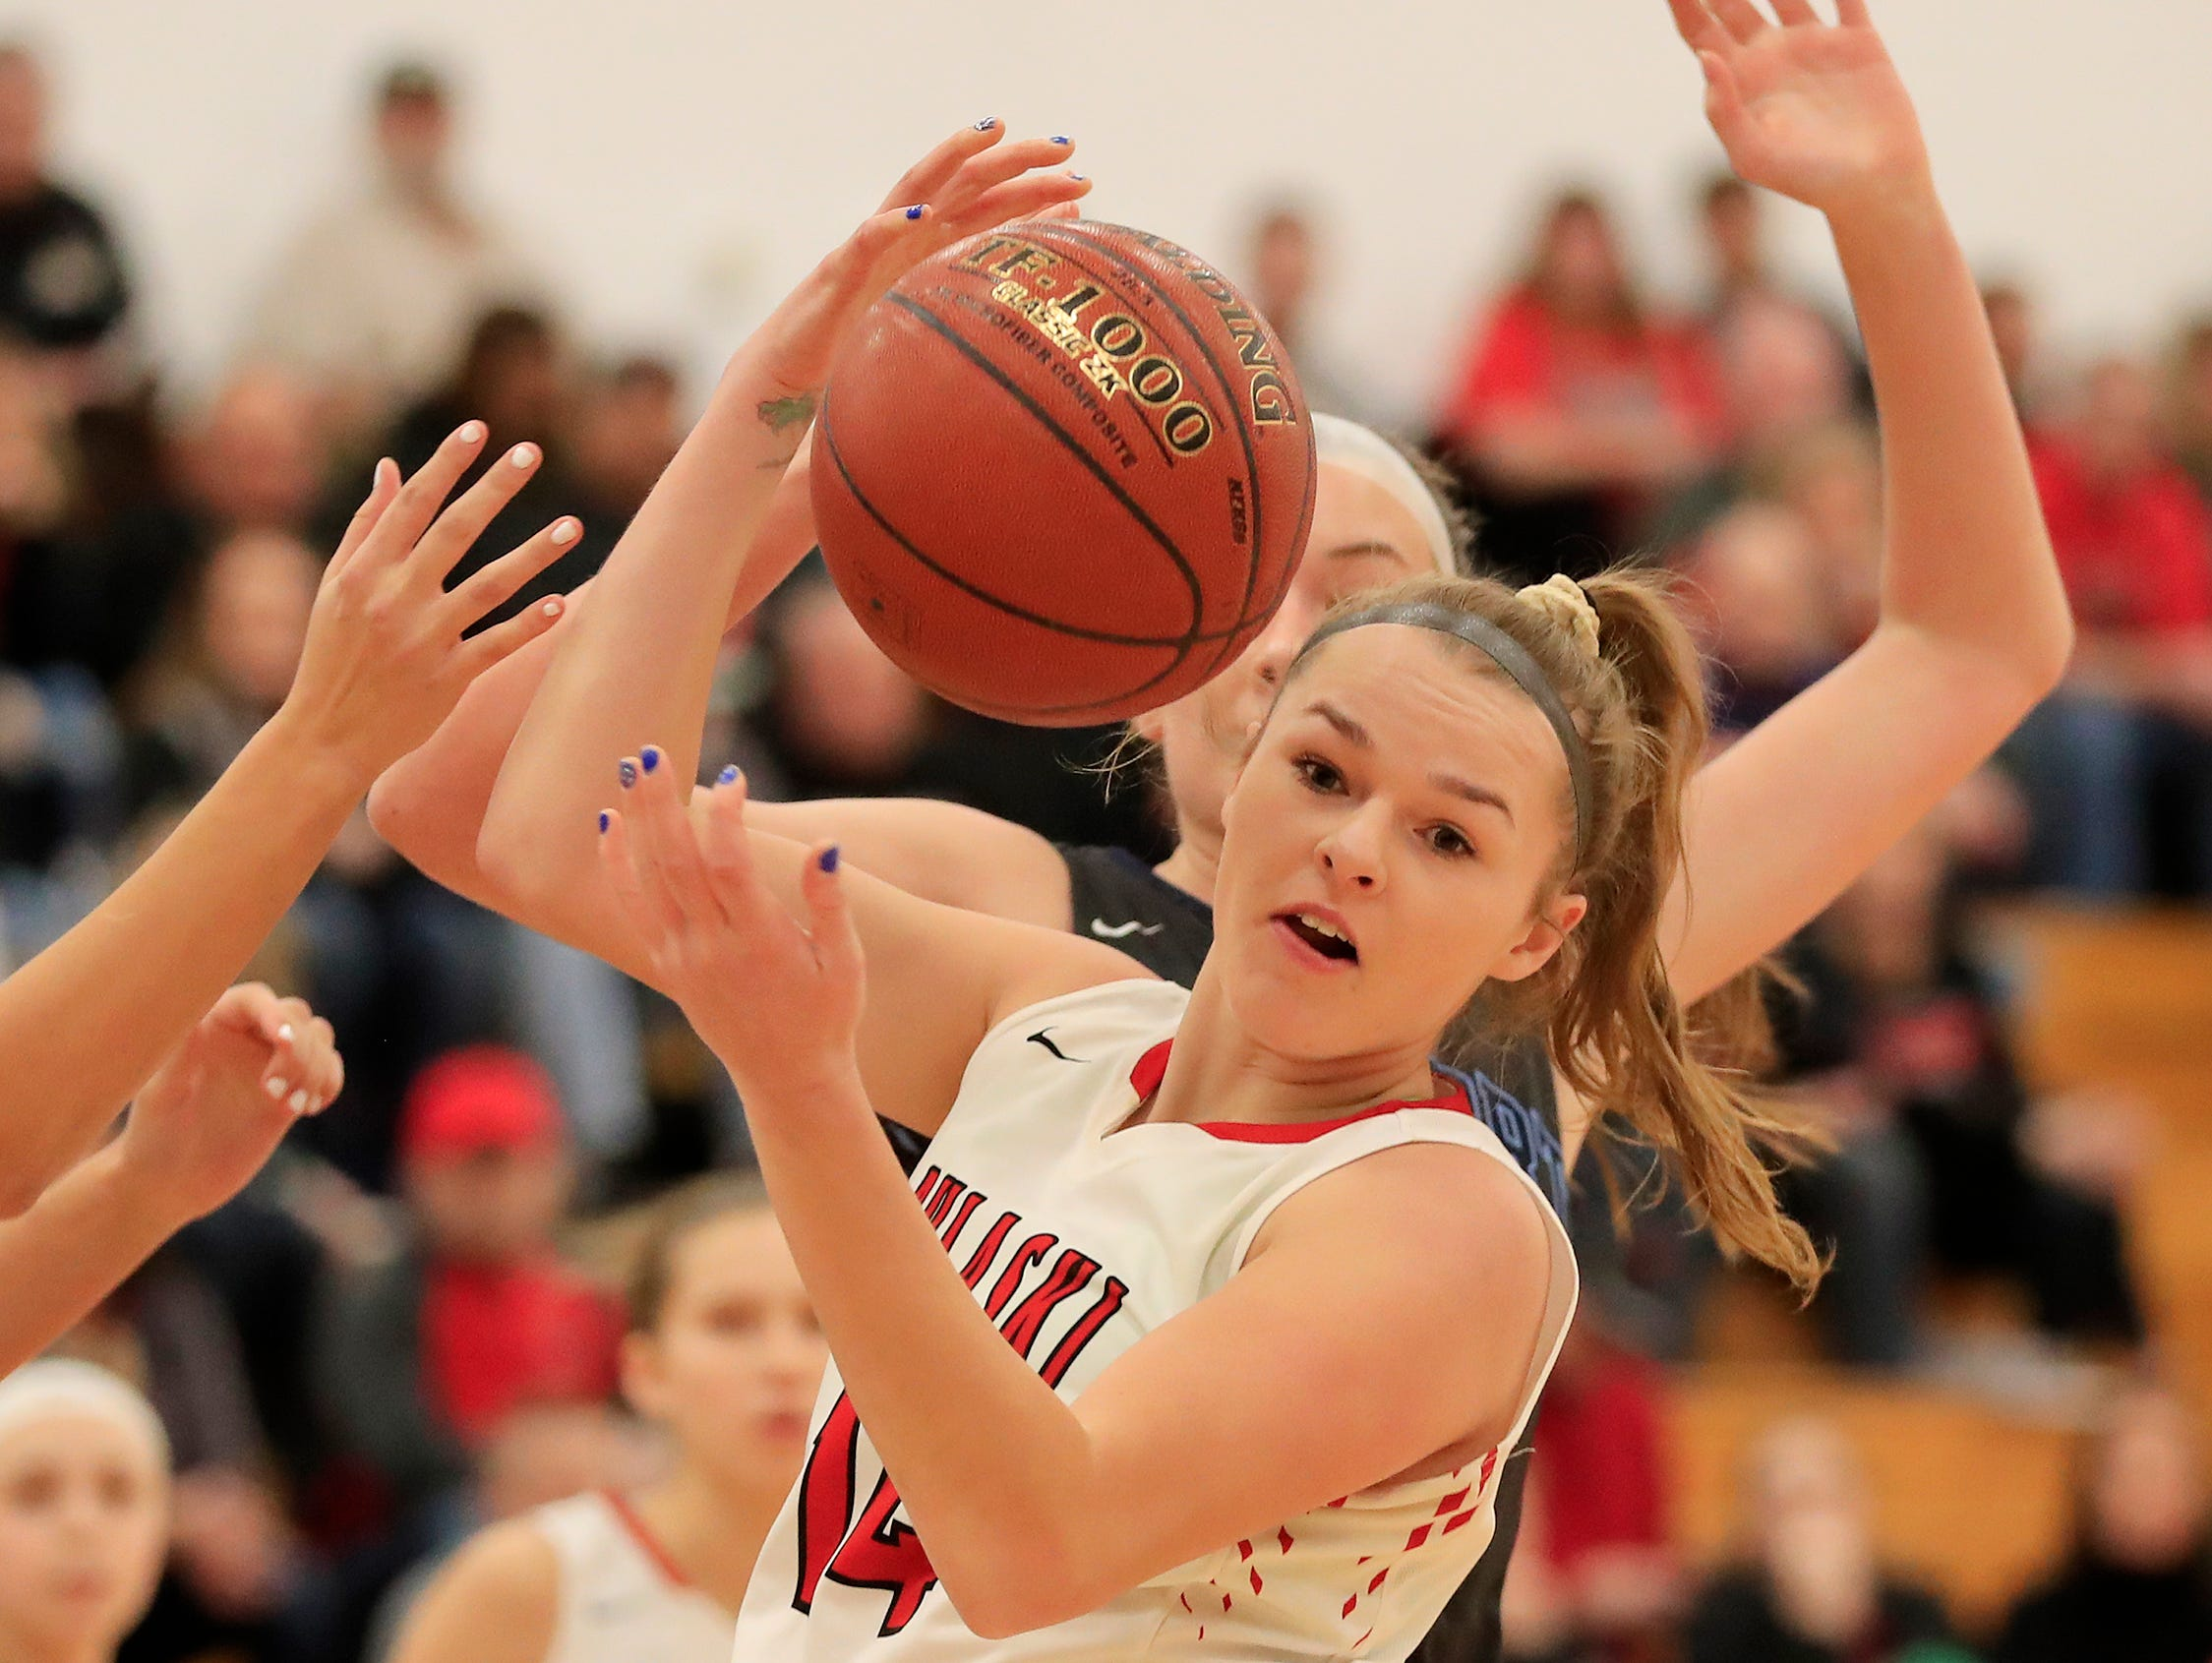 Pulaski's Maggie Hernandez (14) grabs a rebound against Bay Port in a girls basketball game at Pulaski high school on Friday, January 4, 2019 in Pulaski, Wis.